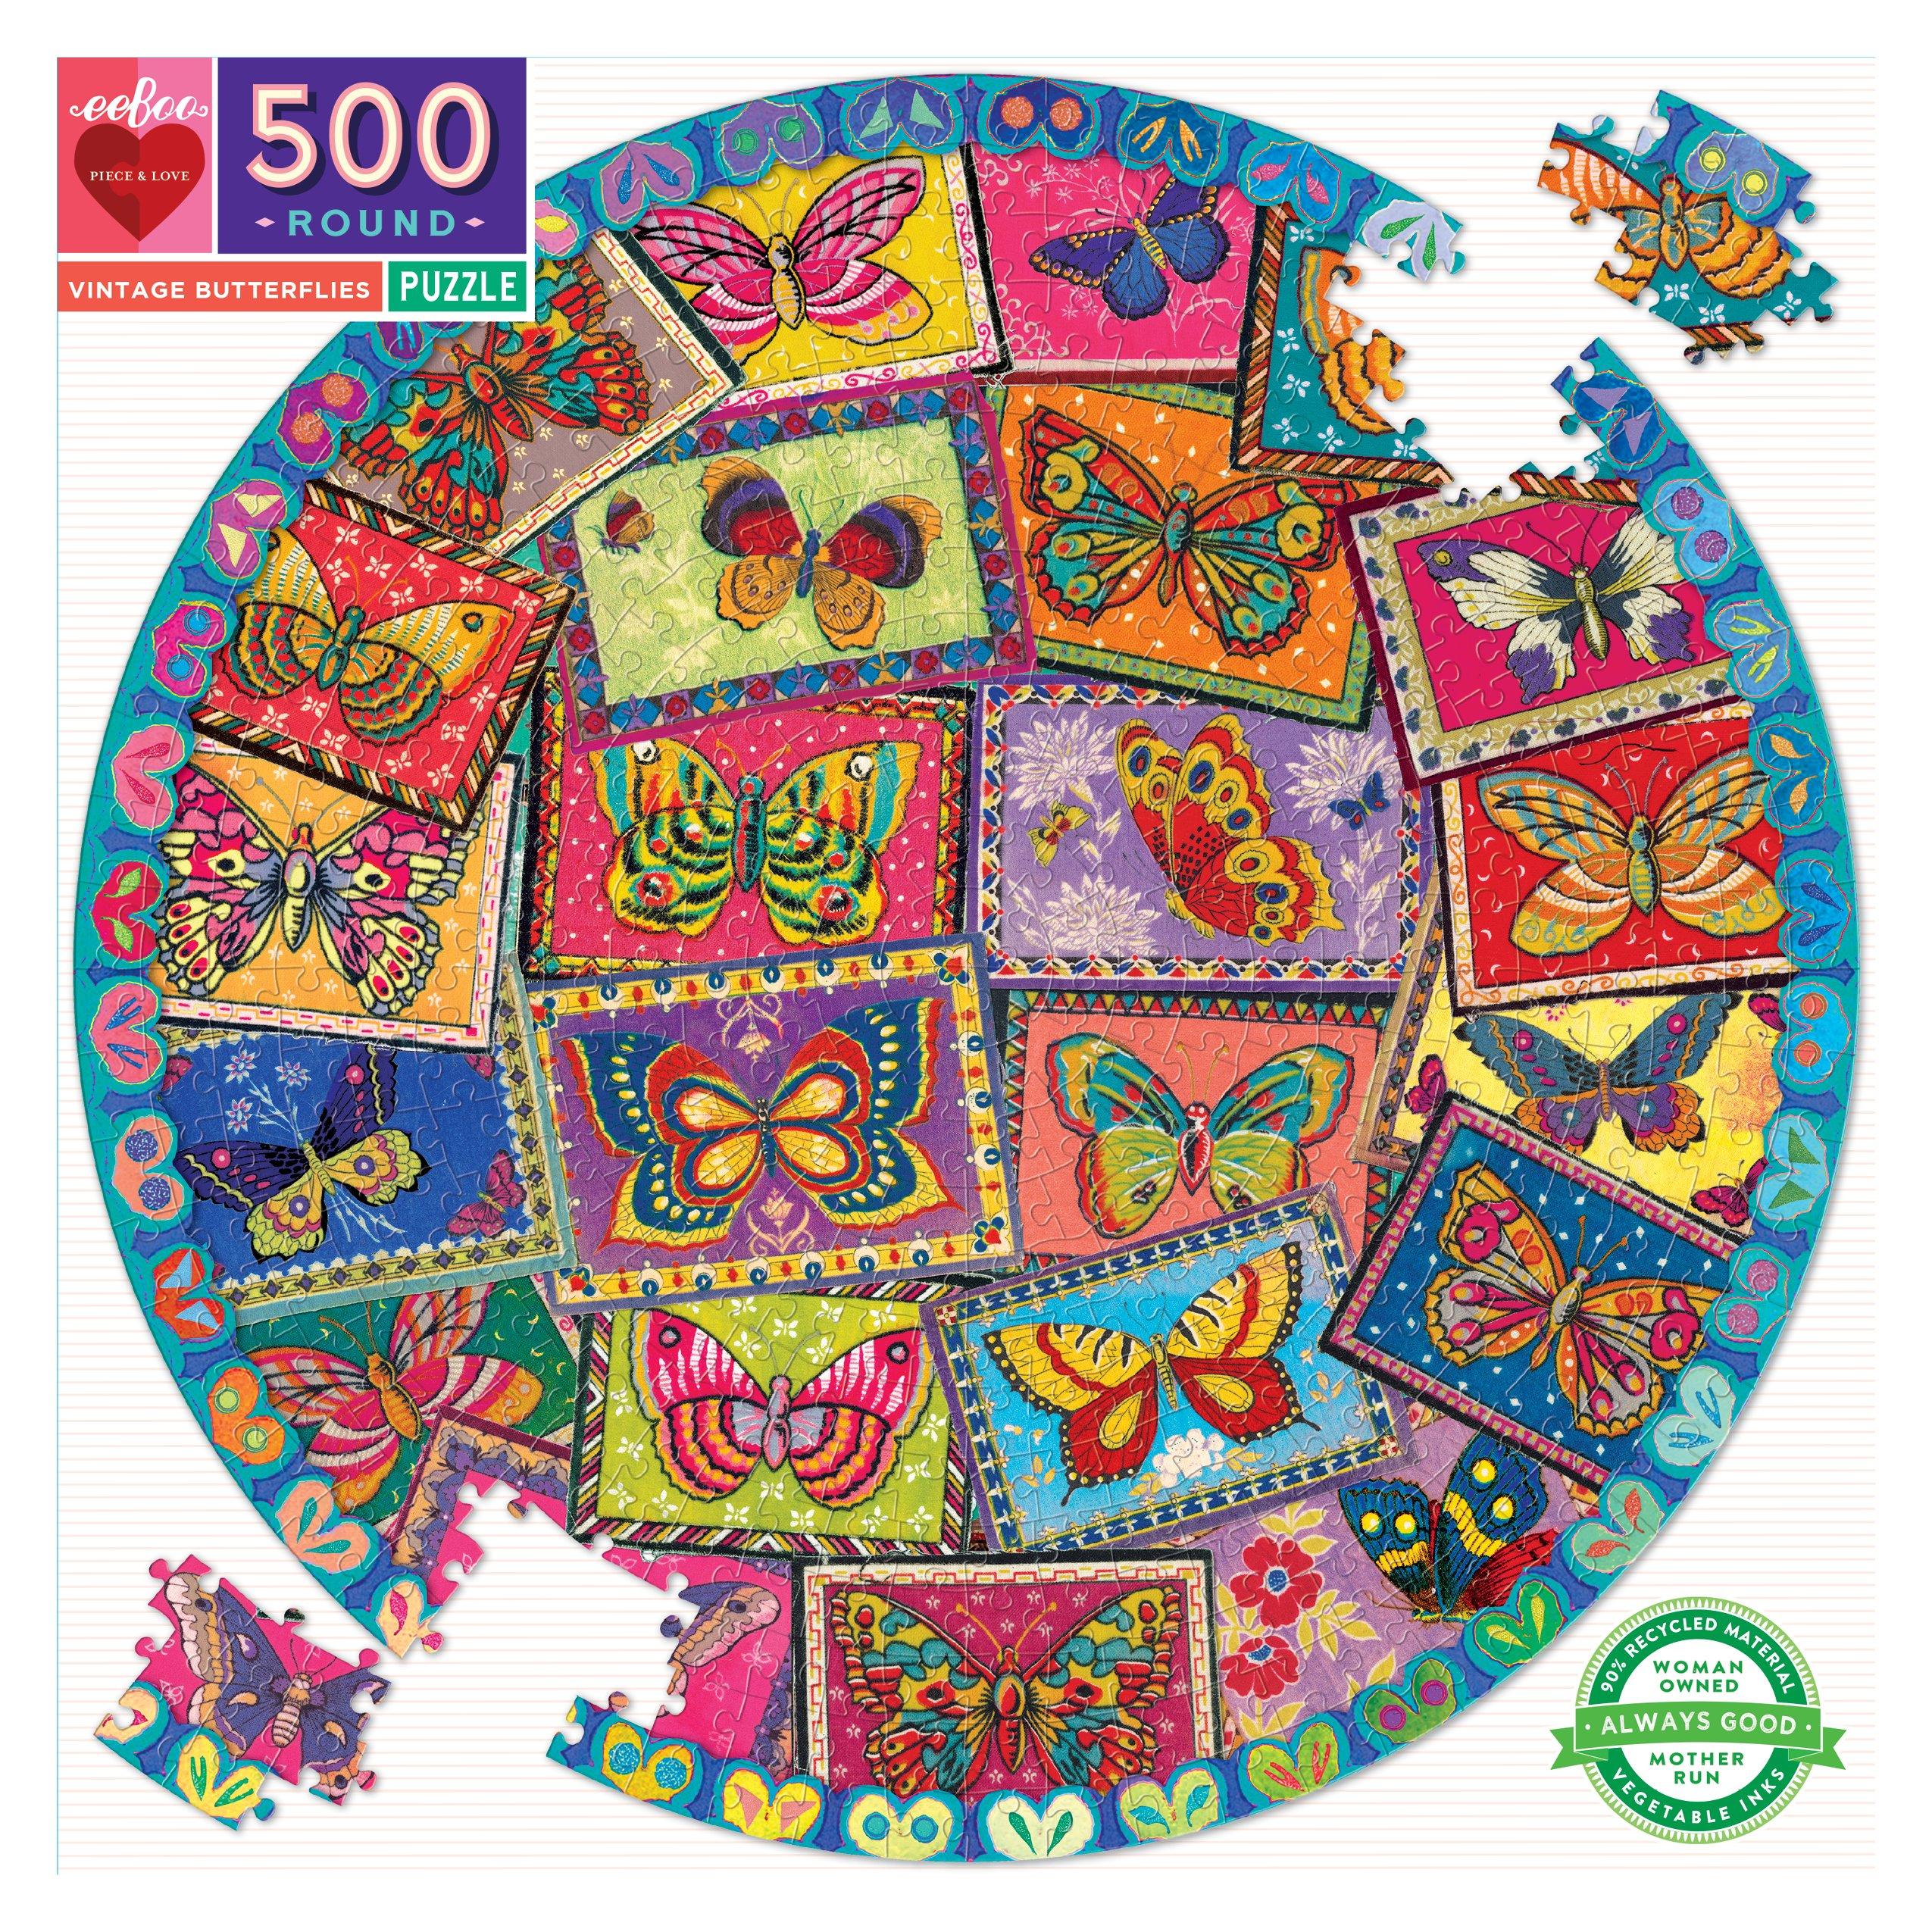 Vintage Butterflies 500 Piece Round Jigsaw Puzzle by eeboo